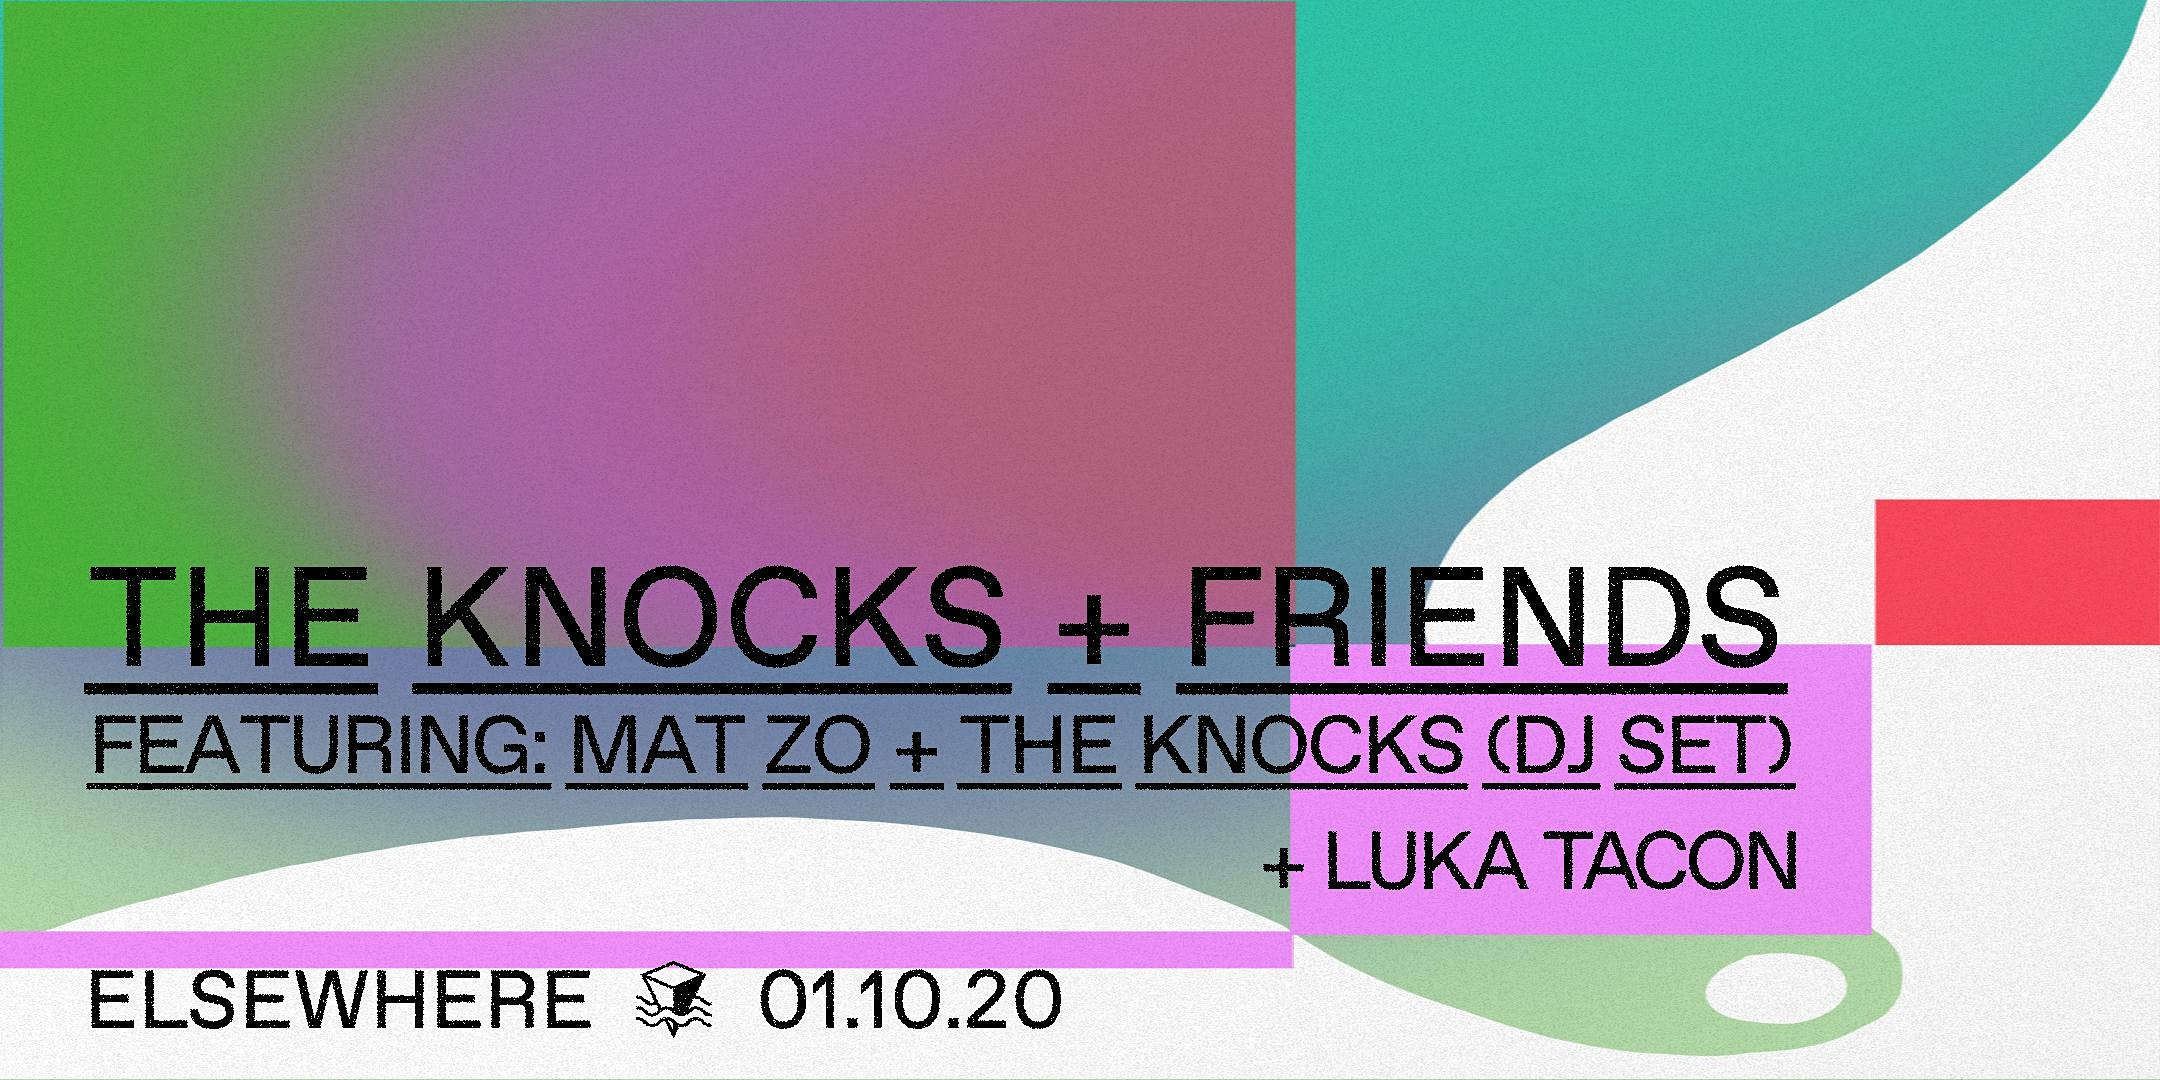 The Knocks and Friends Featuring: Mat Zo & The Knocks (DJ Set) + Luka Tacon